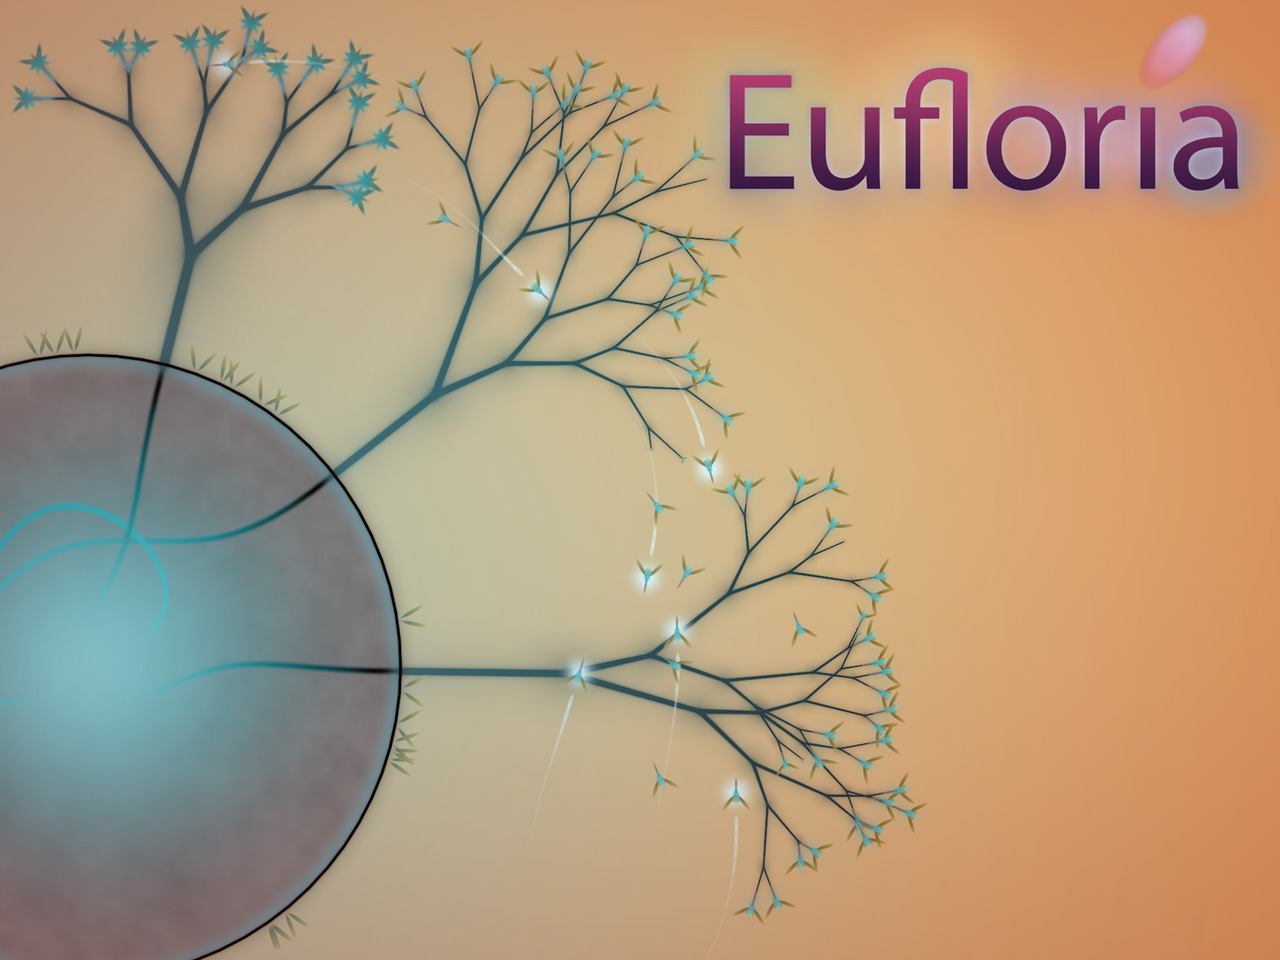 Eufloria for iPhone is out today. Even better, if you own Eufloria HD then it'll work on iPhone too!  iPad 3 owners also get Retina Display support while we've also added an automatic in-game session save to prevent games being abandoned part way through playing a long level. Putting this release together has been hard work. Adding save support meant a large number of changes and also exposed quite a few minor flaws so we're glad it's done. It's a tough life being a developer!